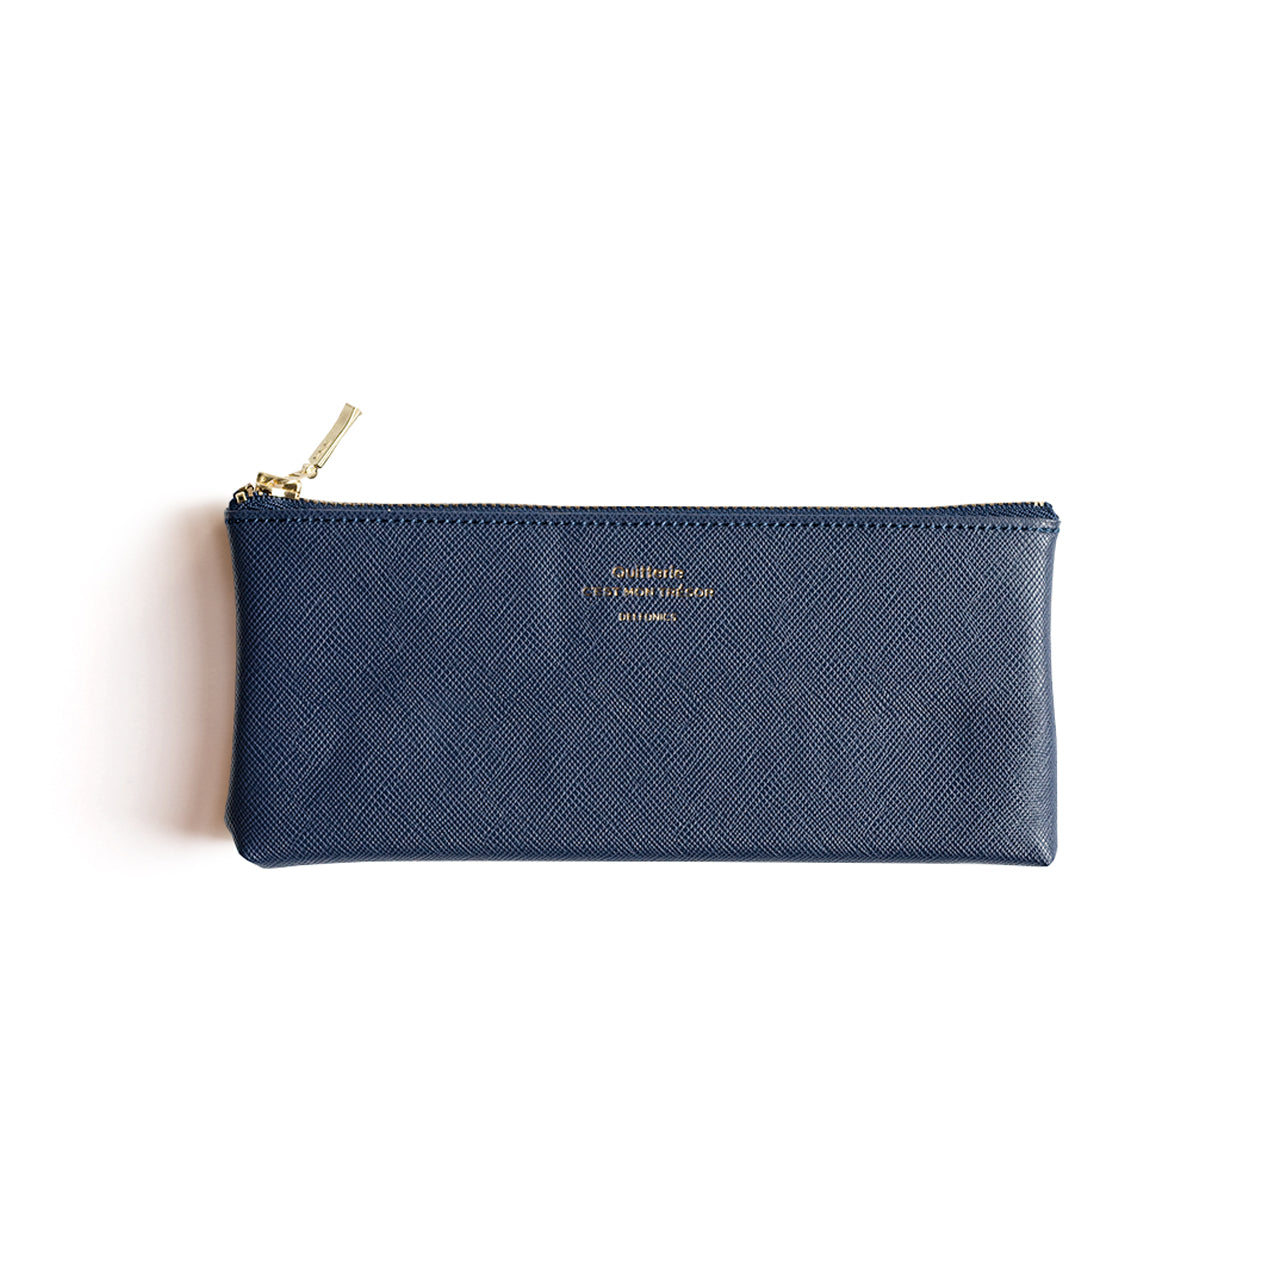 Delfonics - Quitterie Flat Pencil Case - Dark Blue